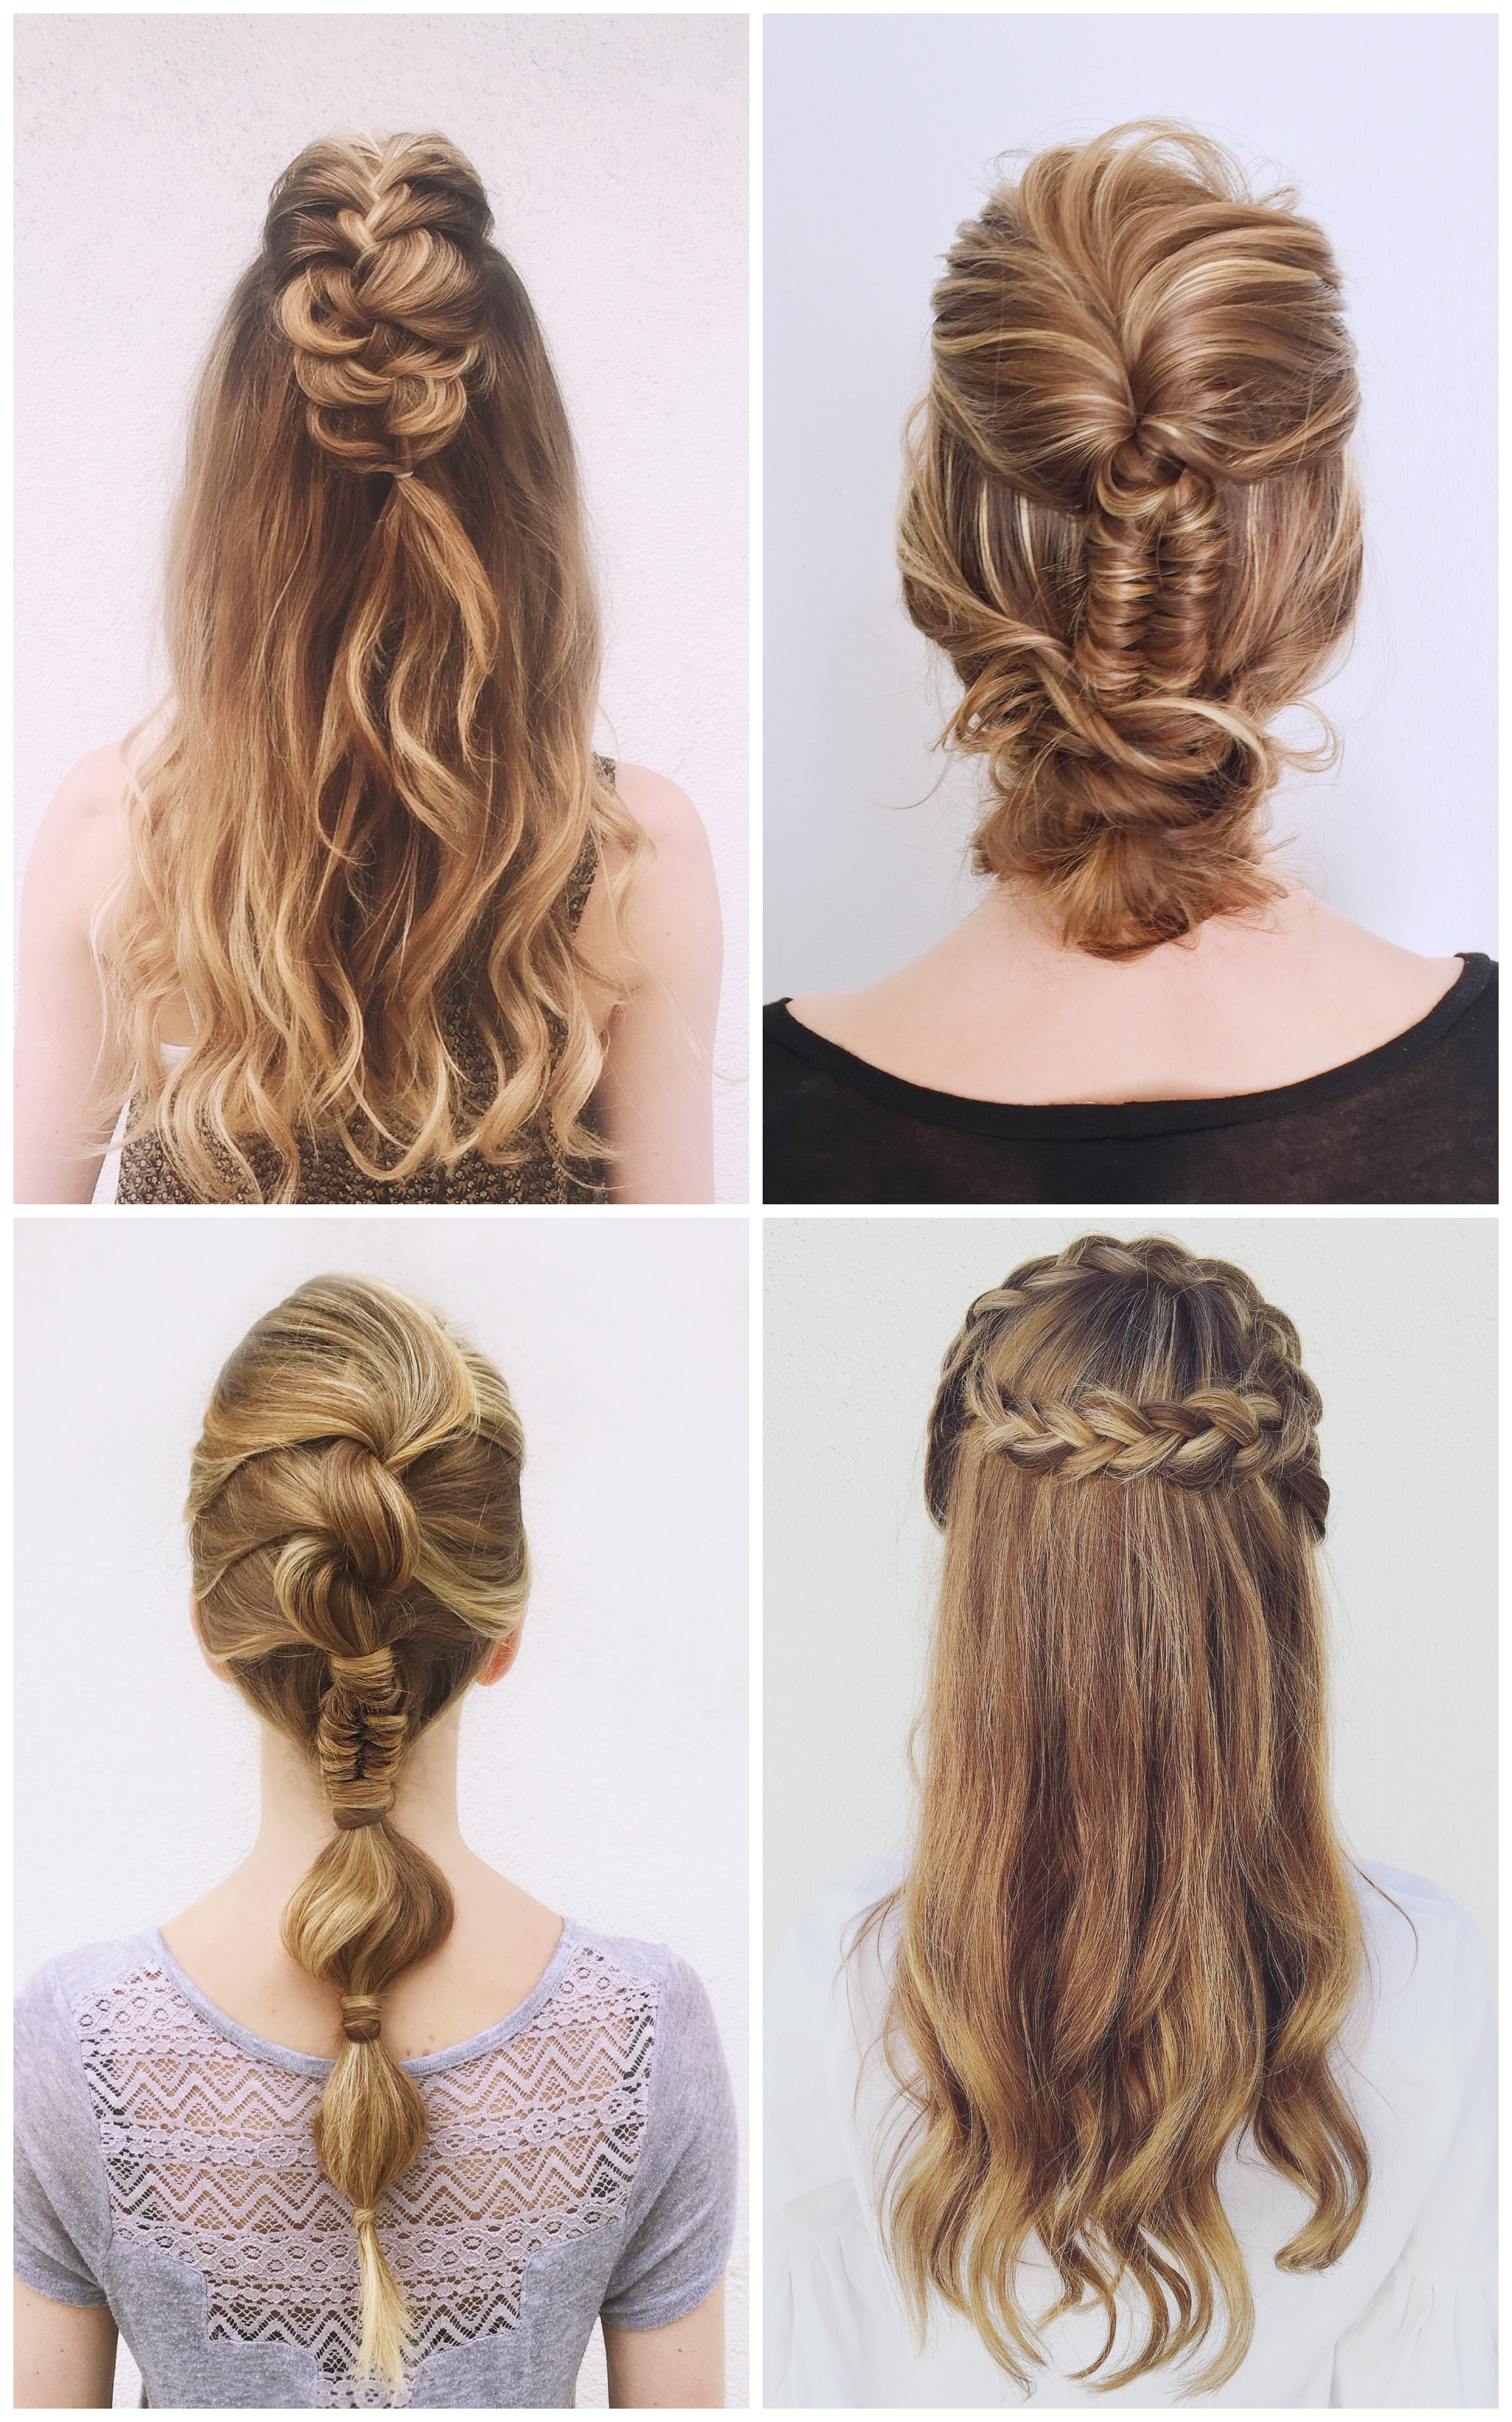 Famous Accent Braid Prom Updos Throughout 20 Braided Prom Hairstyles For Stylish Girls (Gallery 1 of 20)